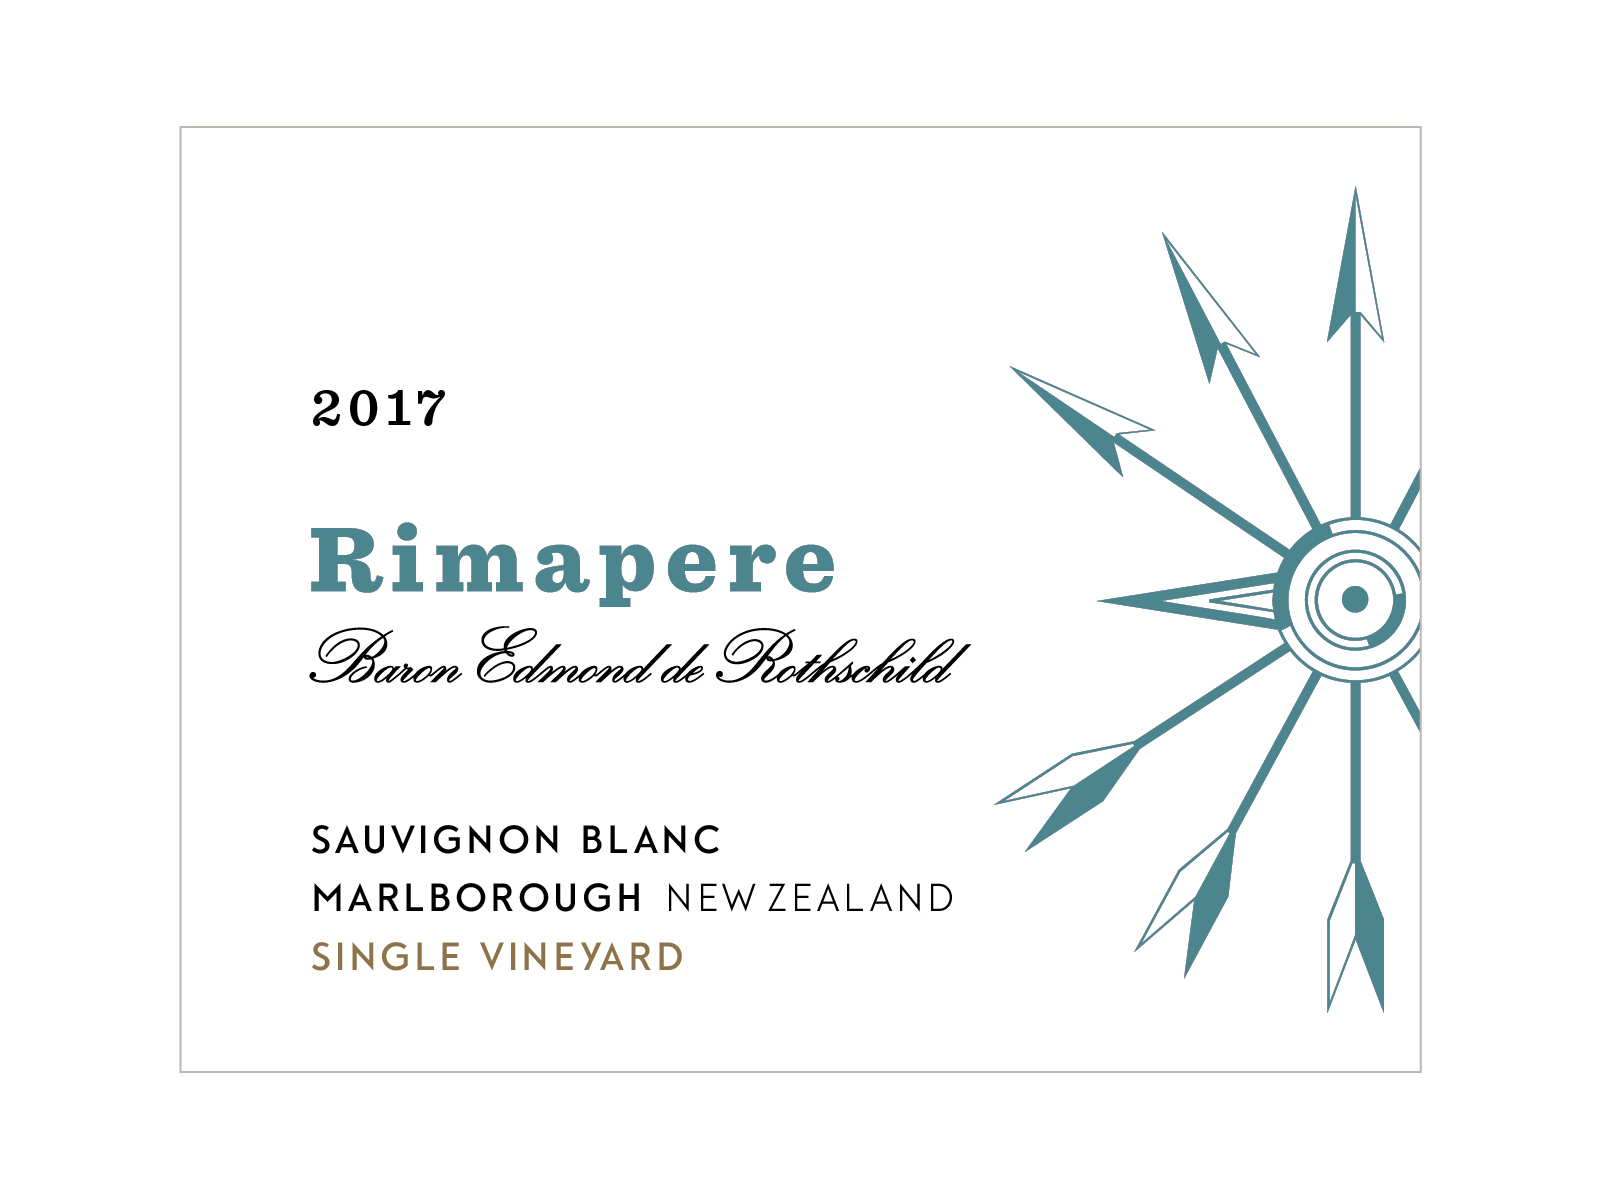 2017 Rimapere Sauvignon Blanc Single Vineyard